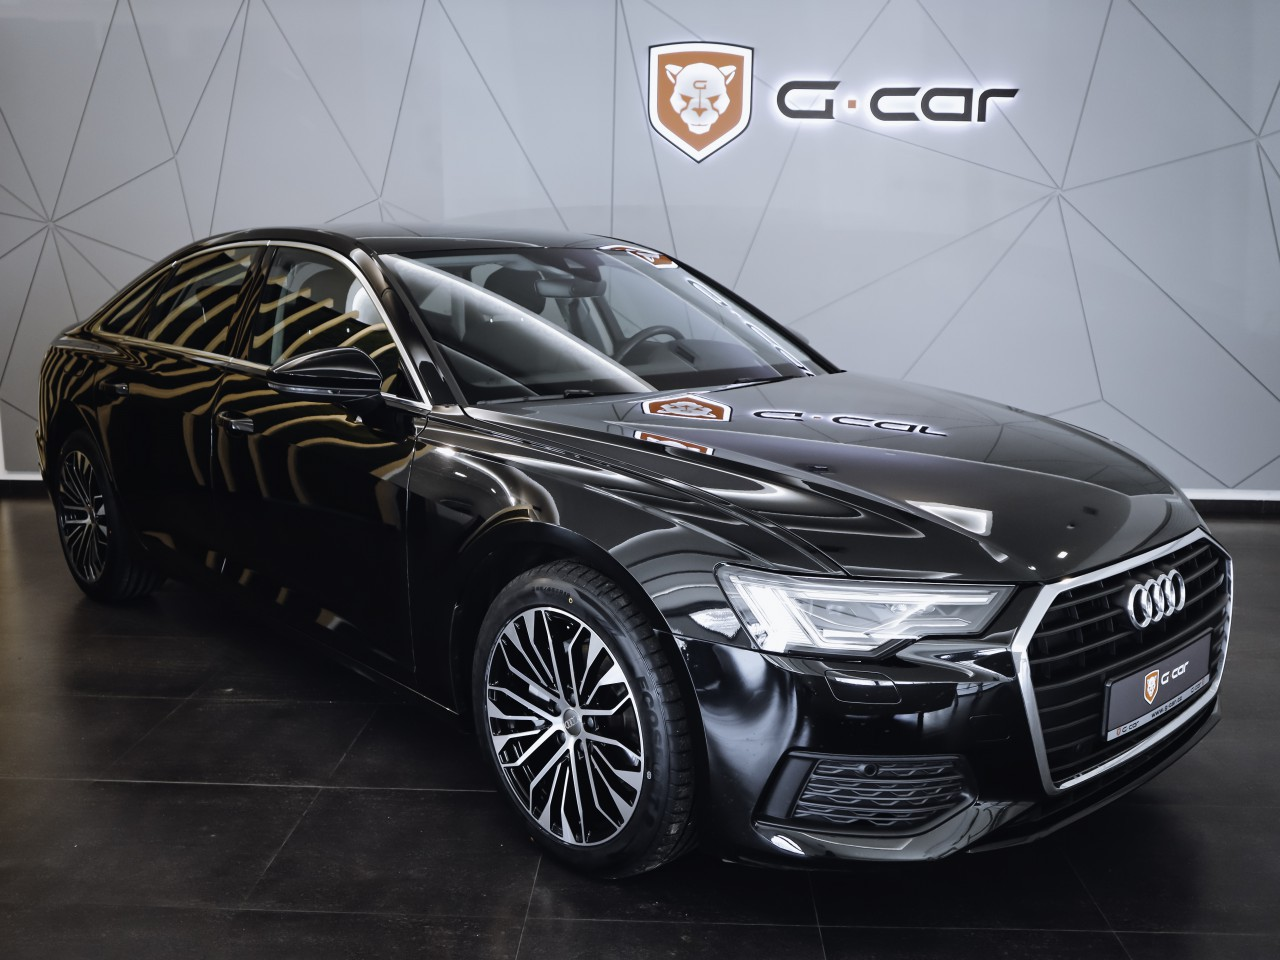 Audi A6 2.0 TDI 150 kW LED MATRIX